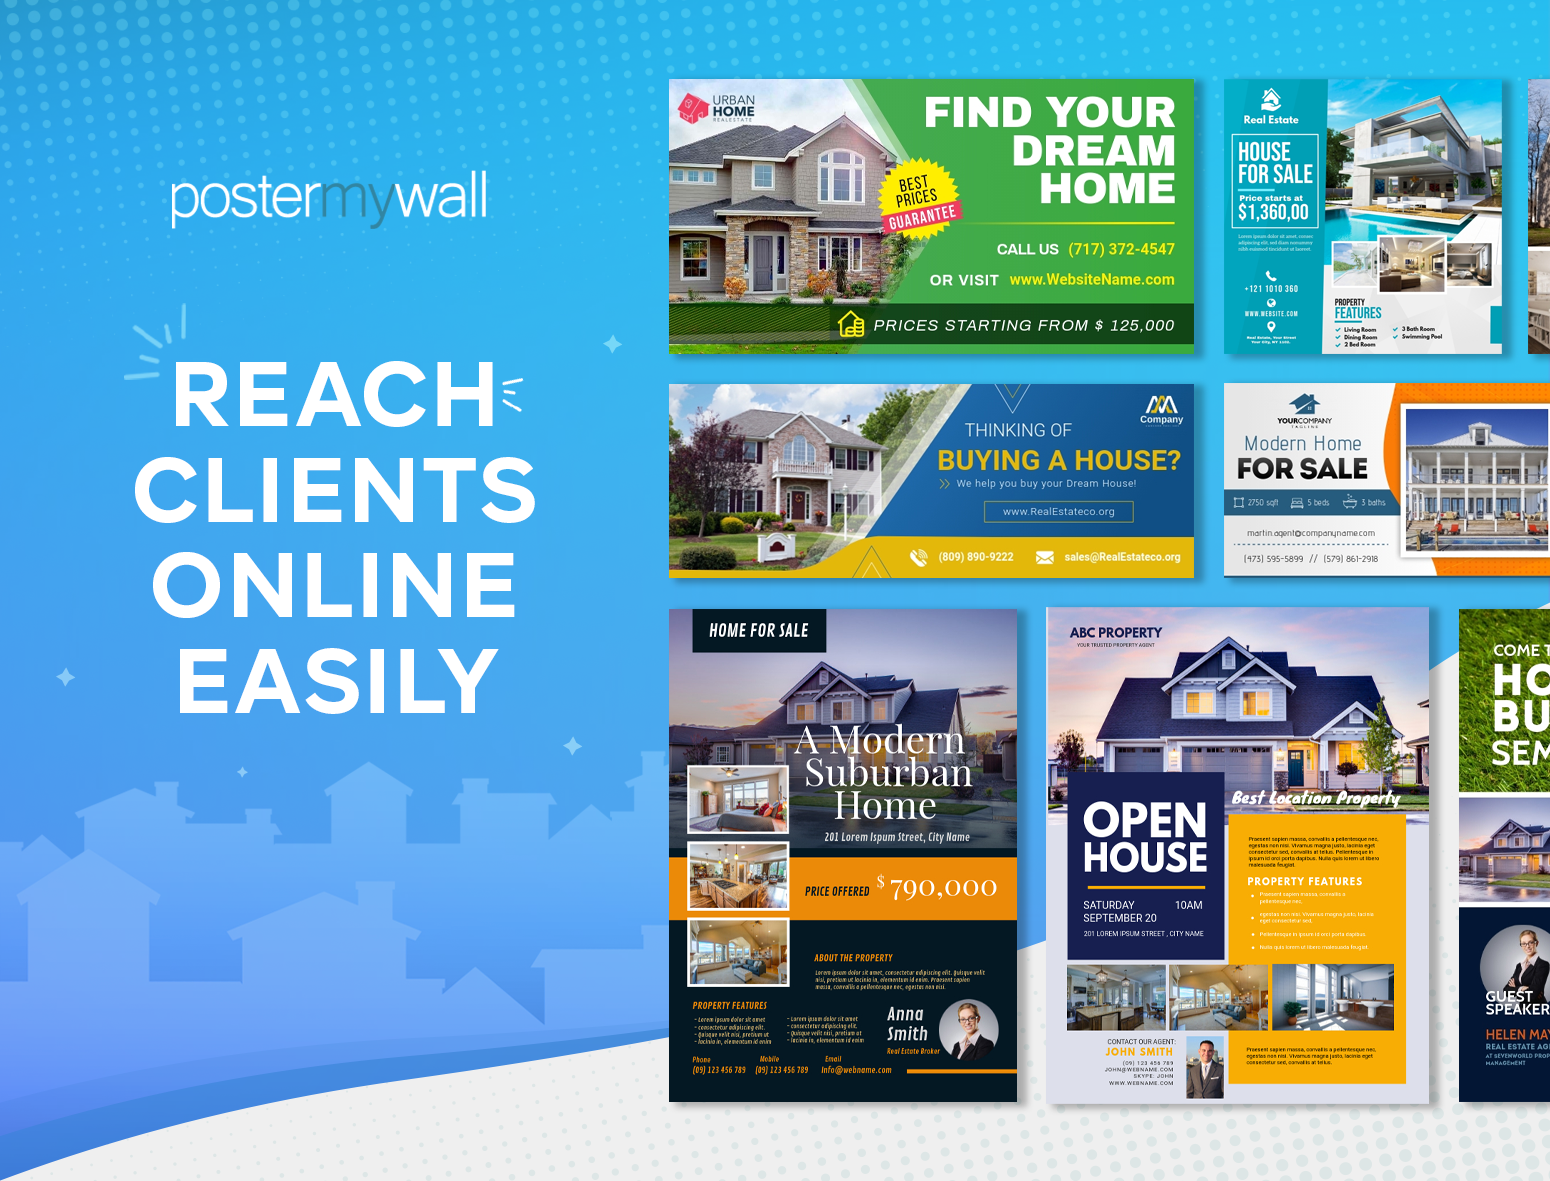 PosterMyWall - Reach Clients Online Easily